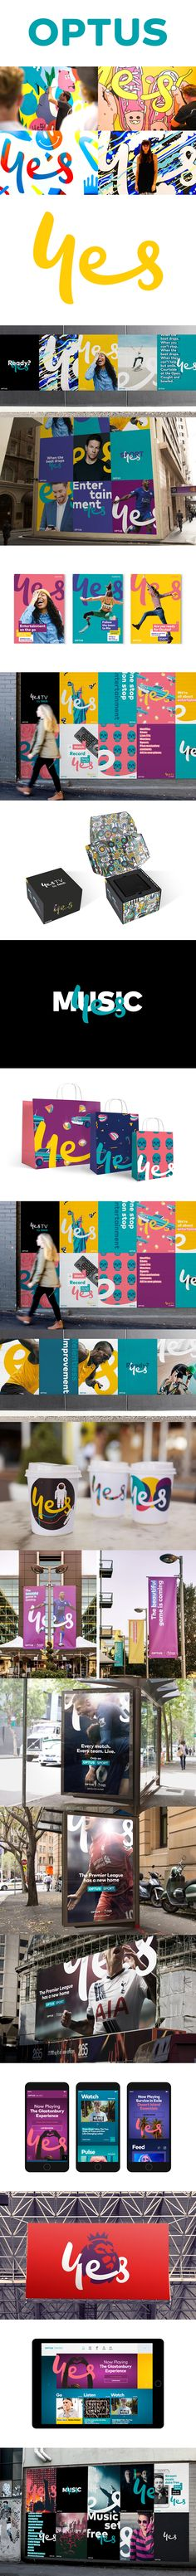 Optus logo and brand identity by Re